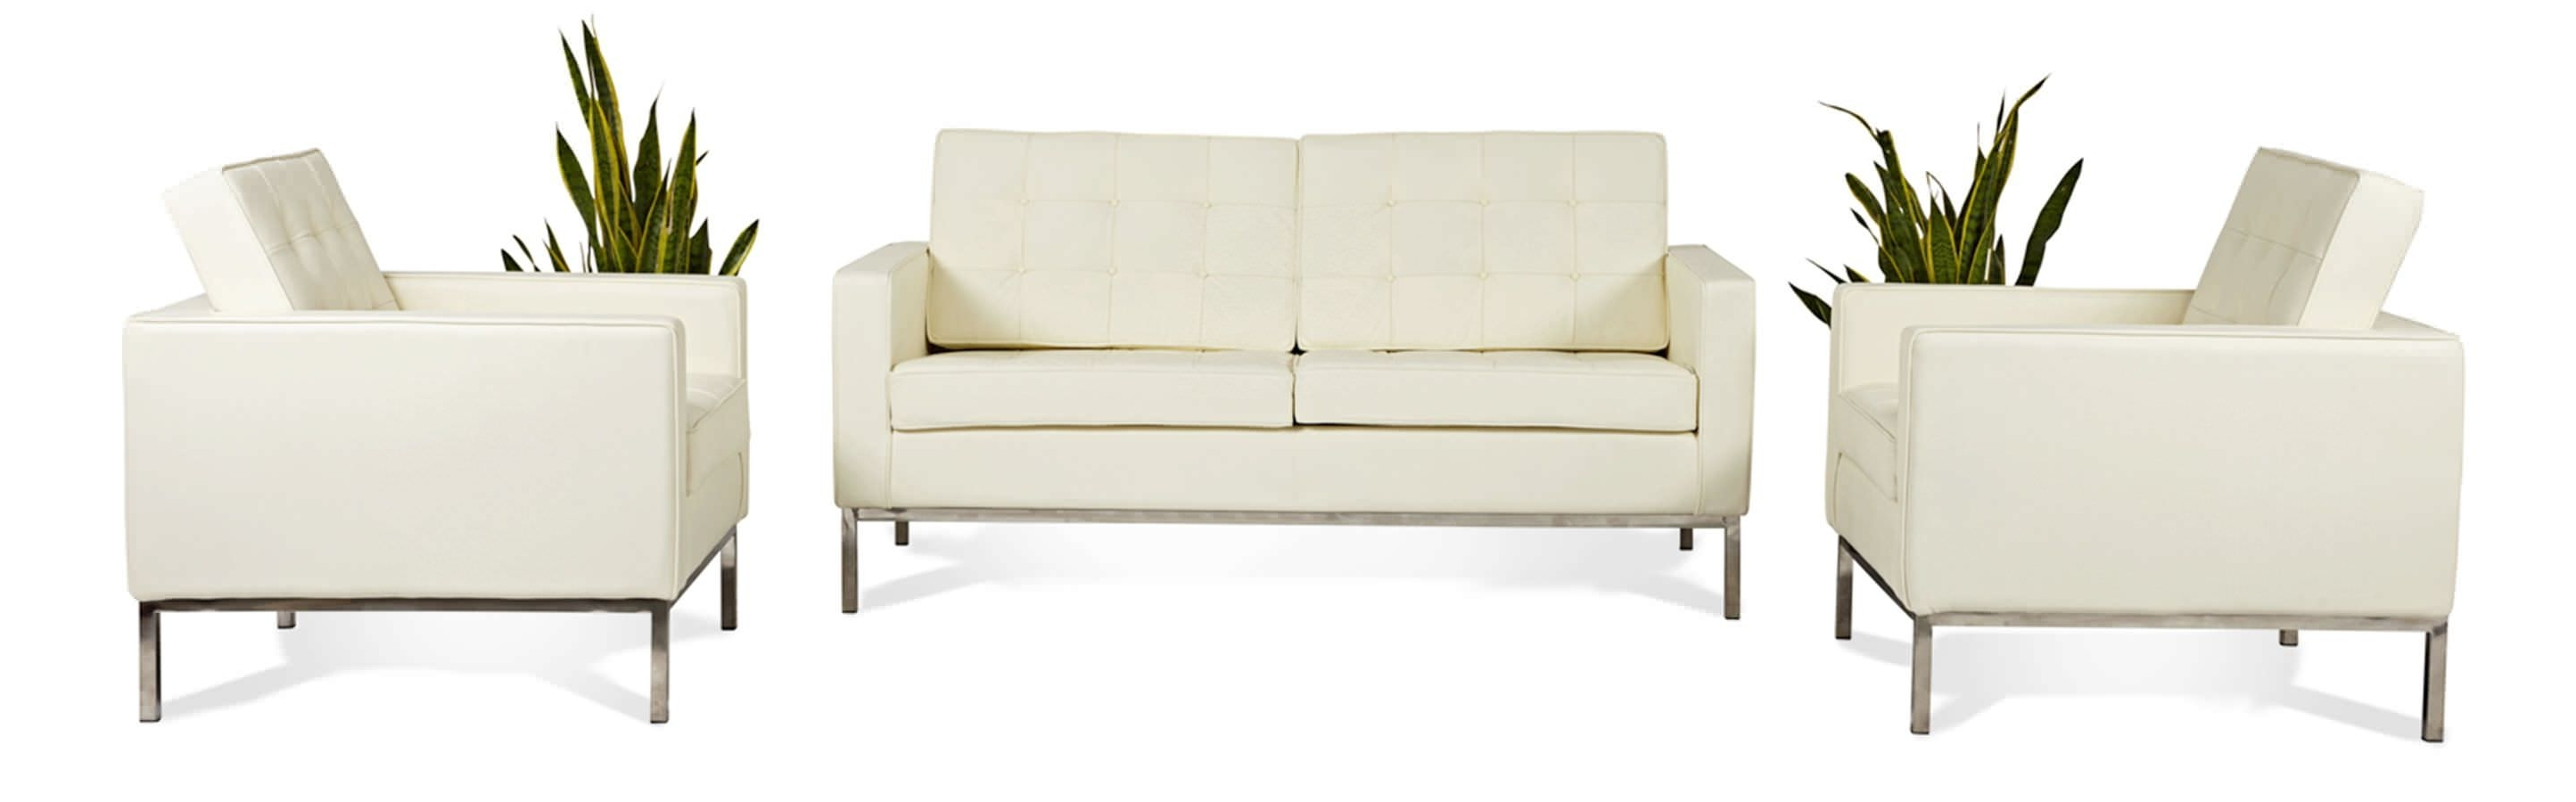 Most Recent Florence Sofas And Loveseats Throughout Florence Knoll Style Loveseat 2 Seater Small Sofa Mid Century Modern (View 10 of 20)